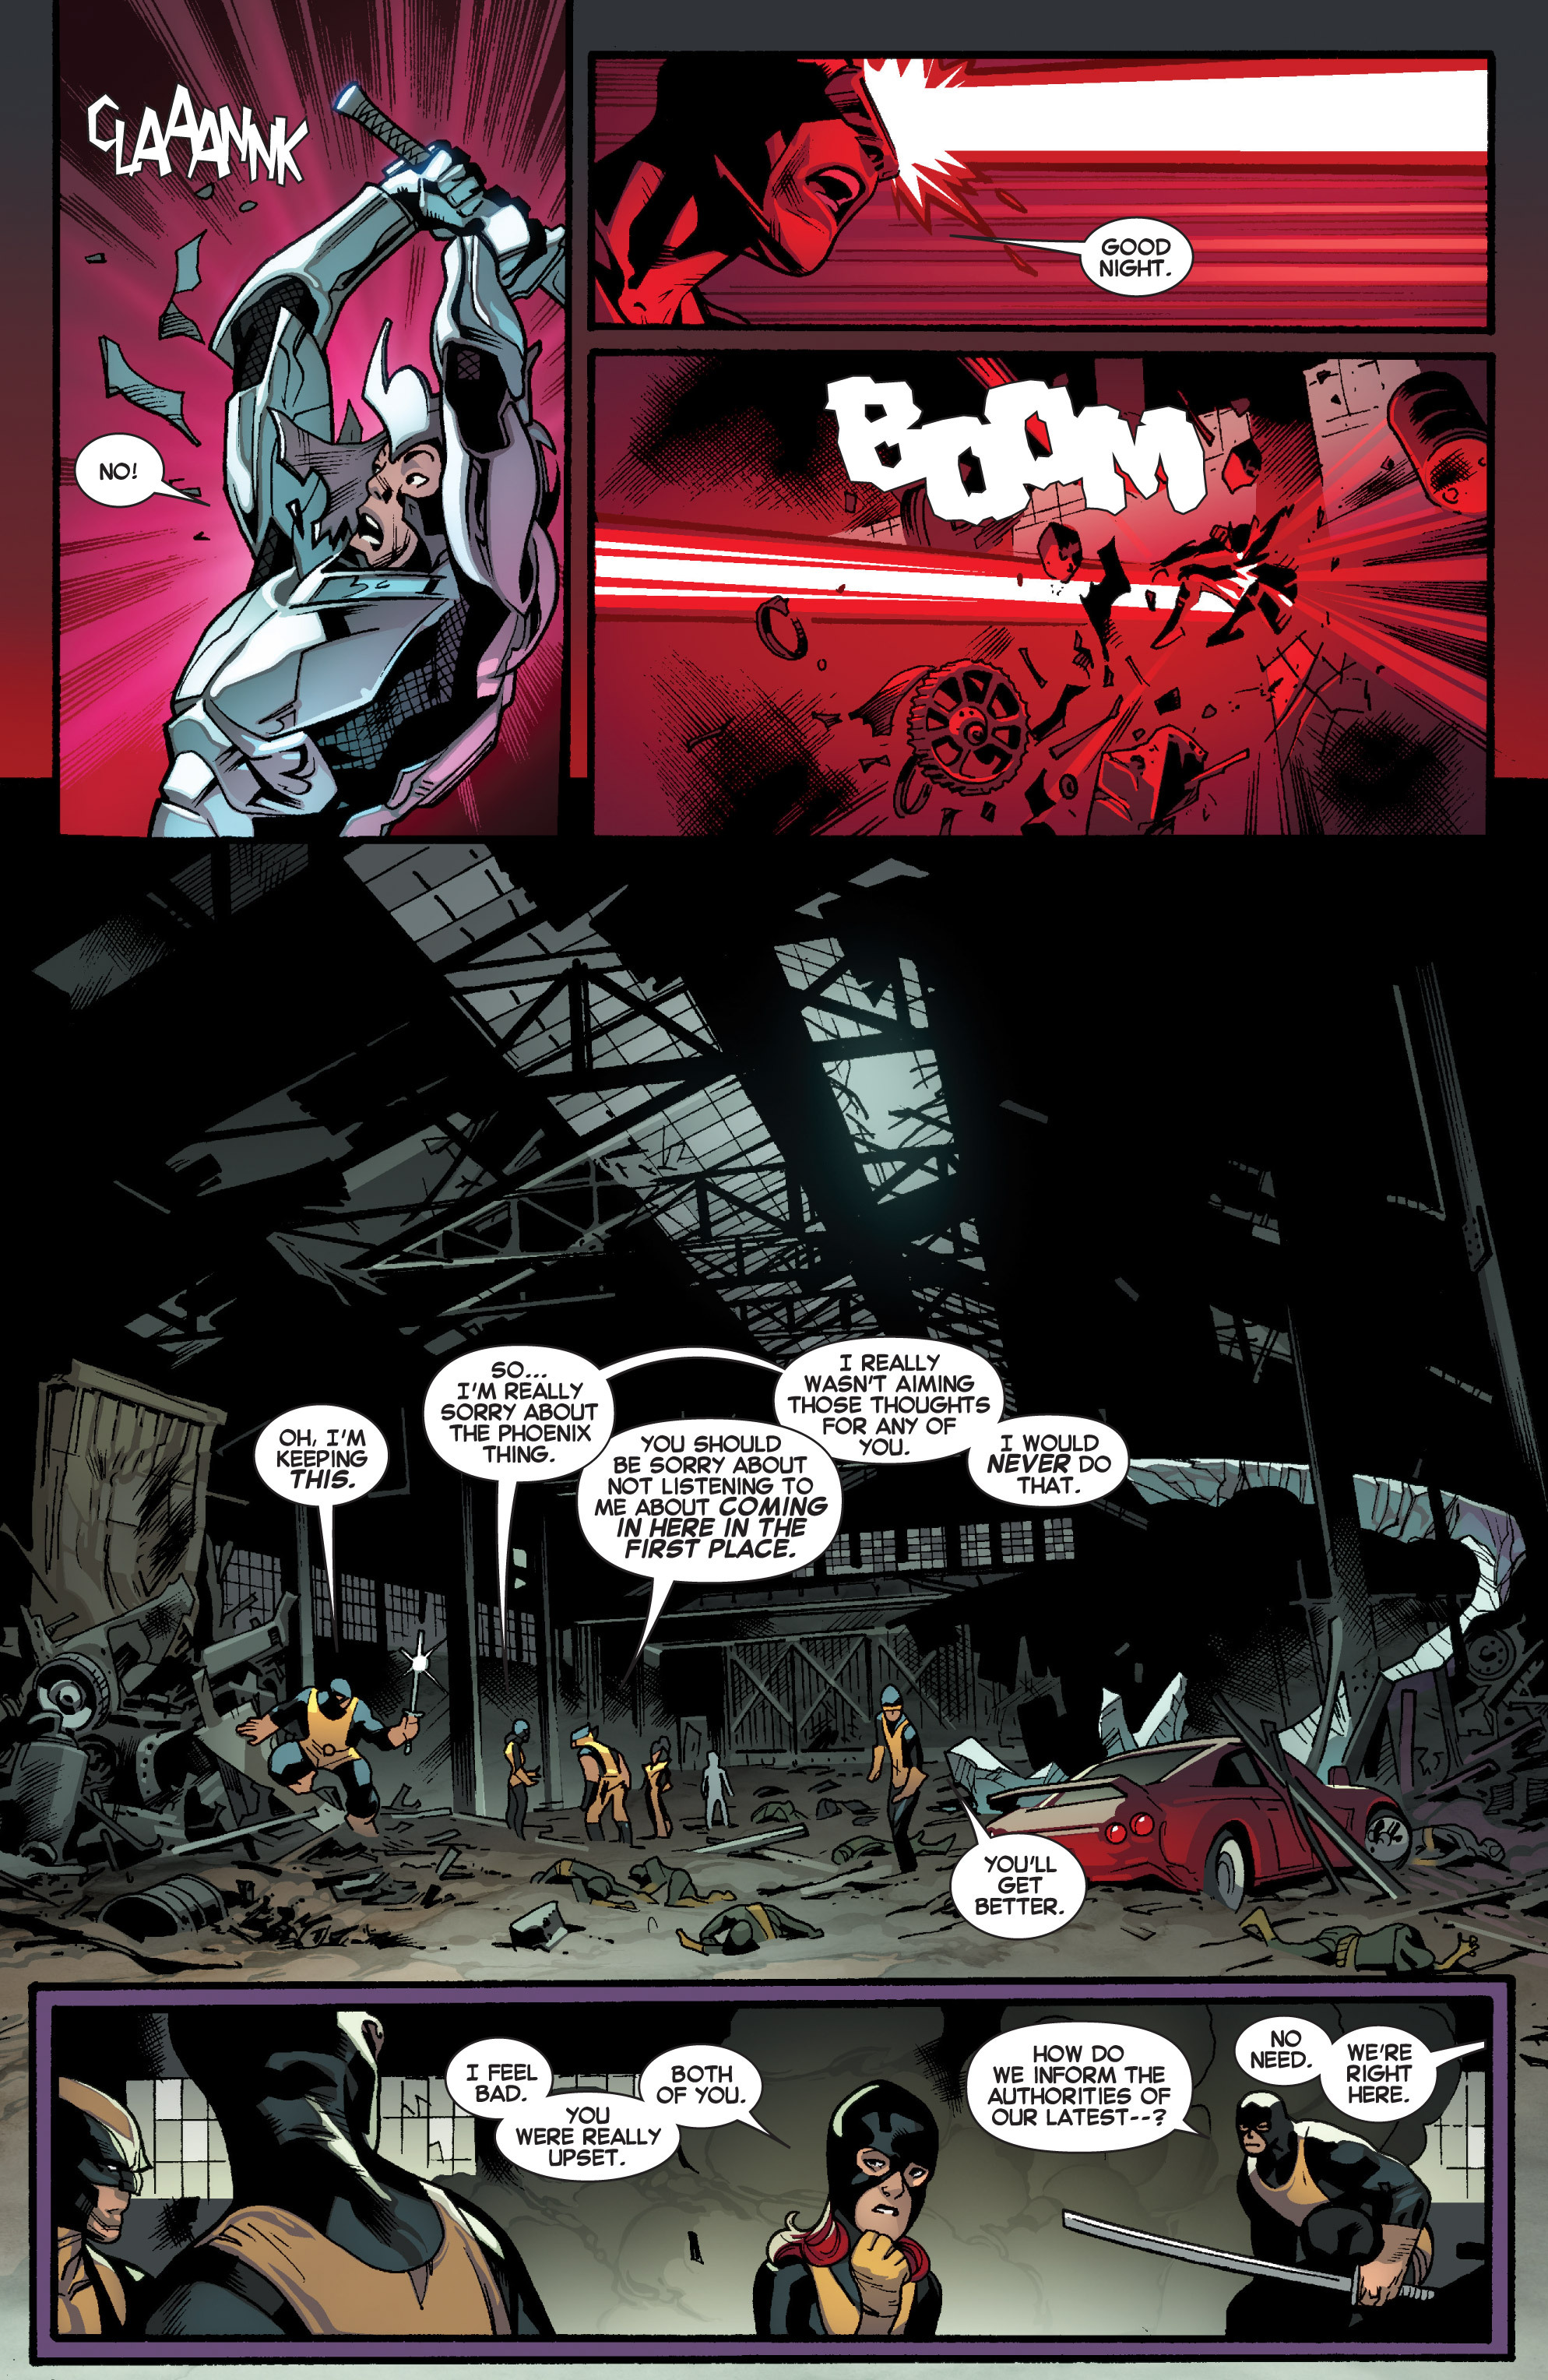 Read online All-New X-Men (2013) comic -  Issue # _Special - Out Of Their Depth - 80